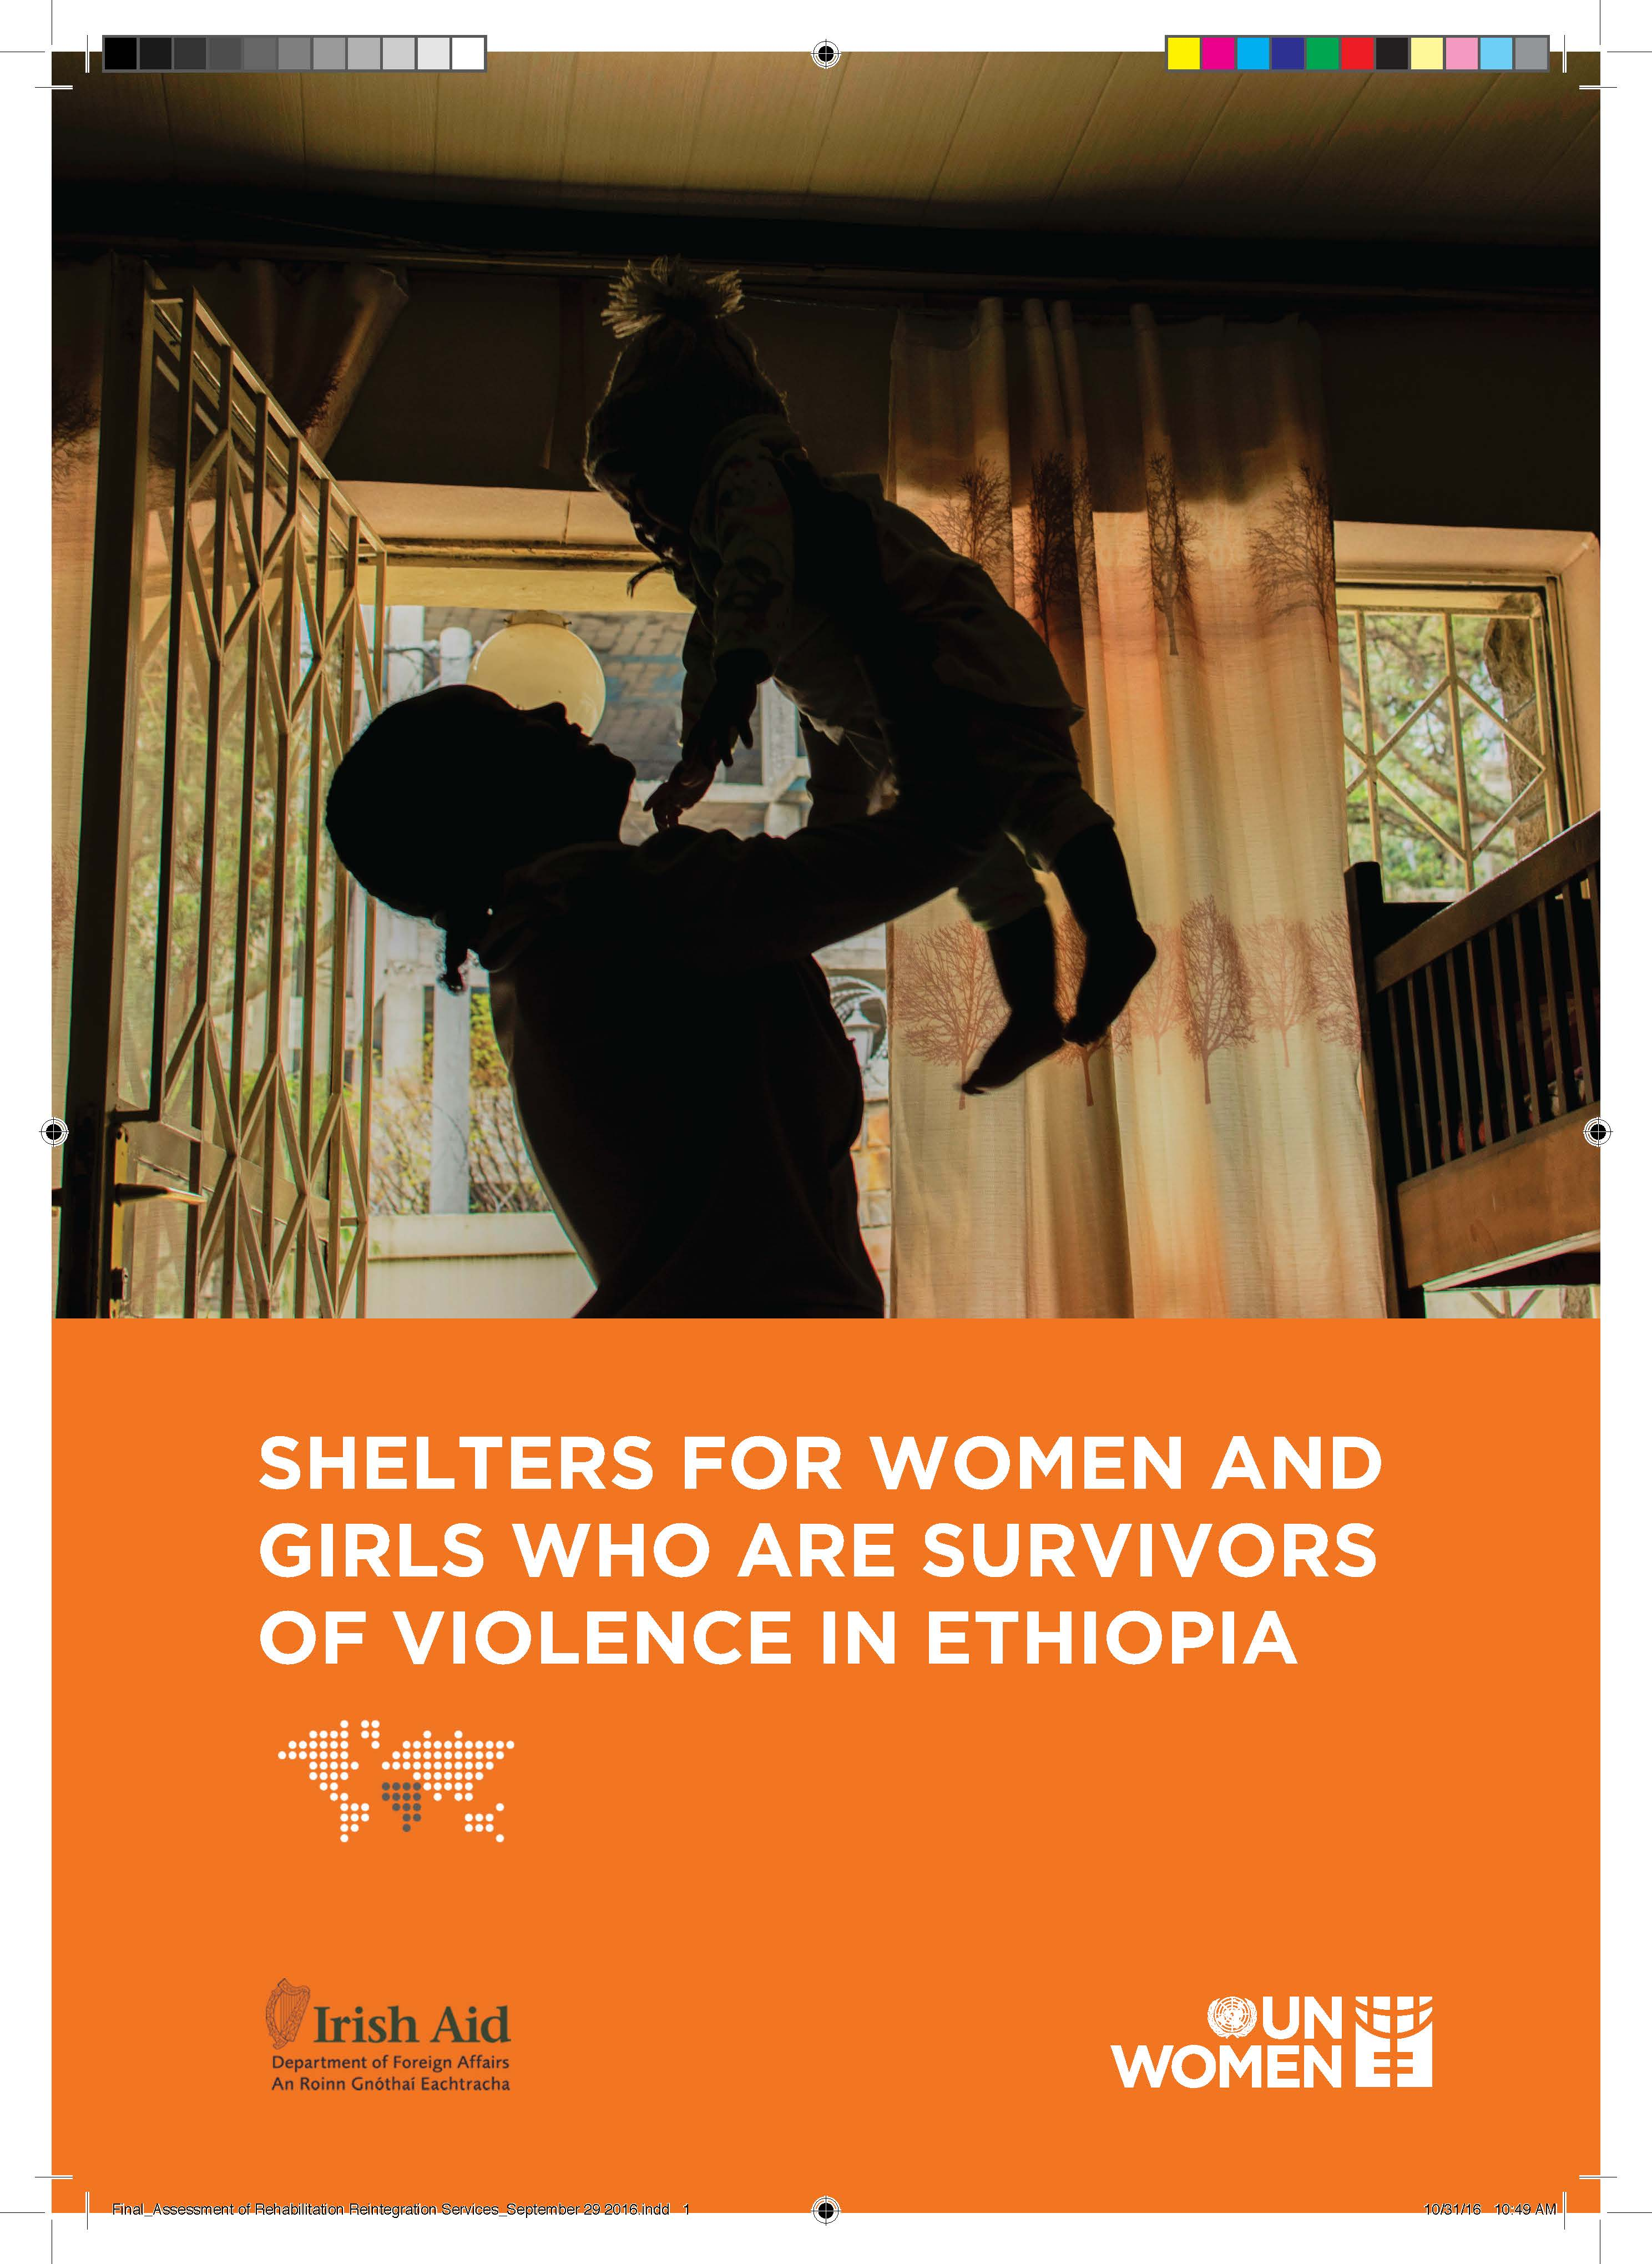 Shelters for women and girls who are survivors of violence in Ethiopia